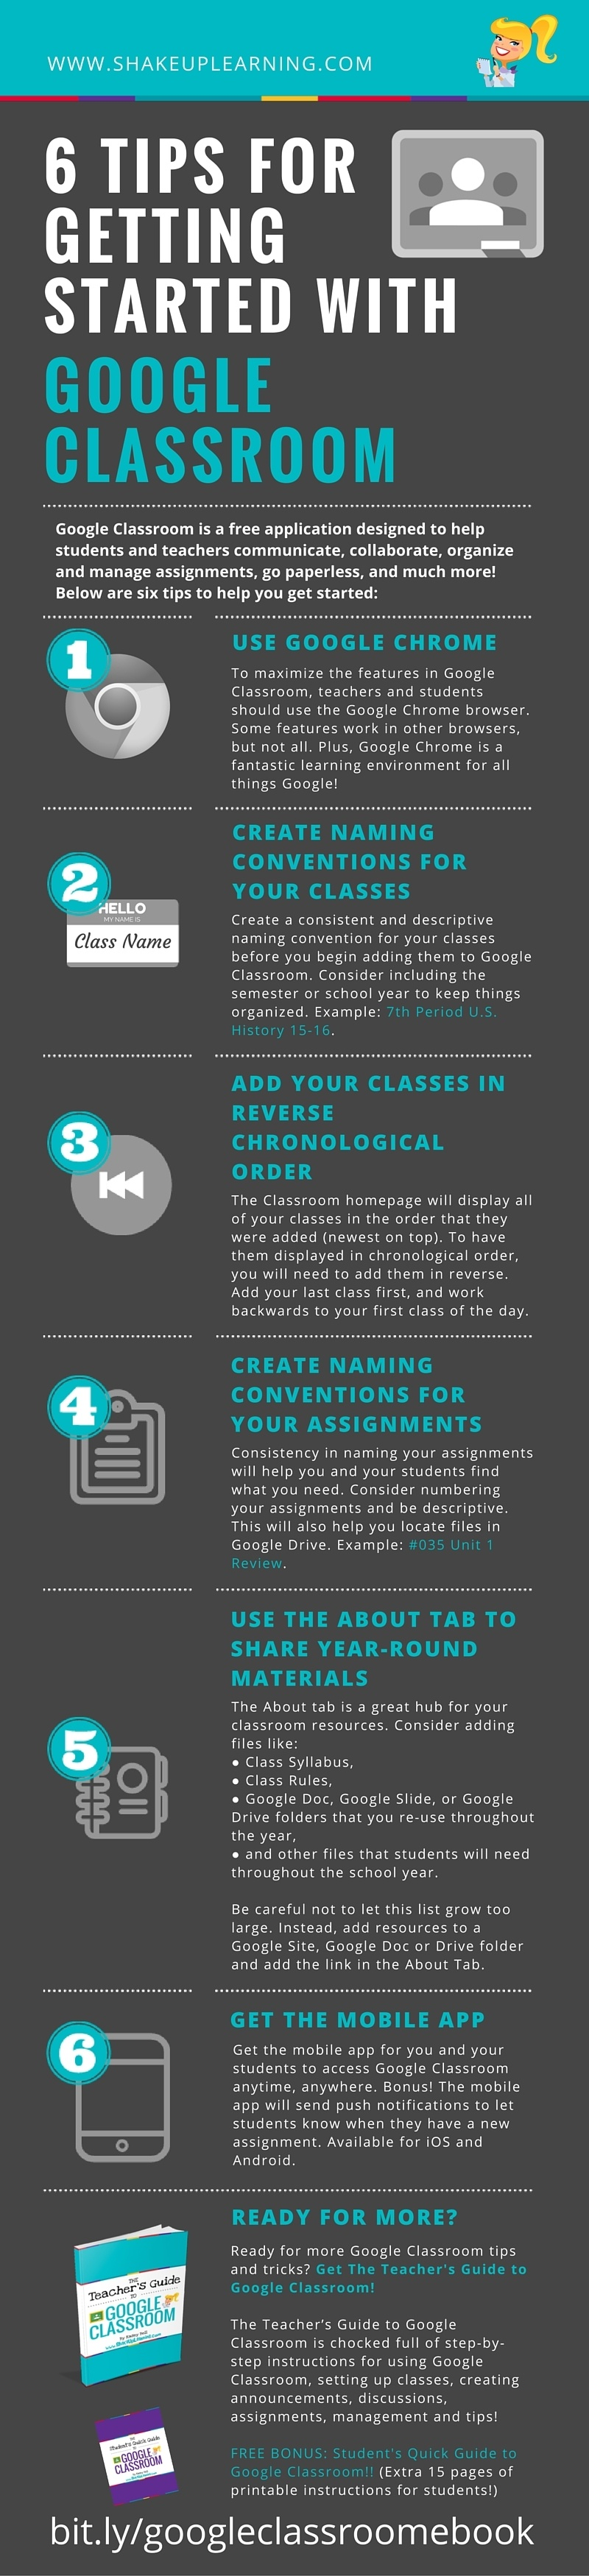 6 Tips for Getting Started with Google Classroom Infographic